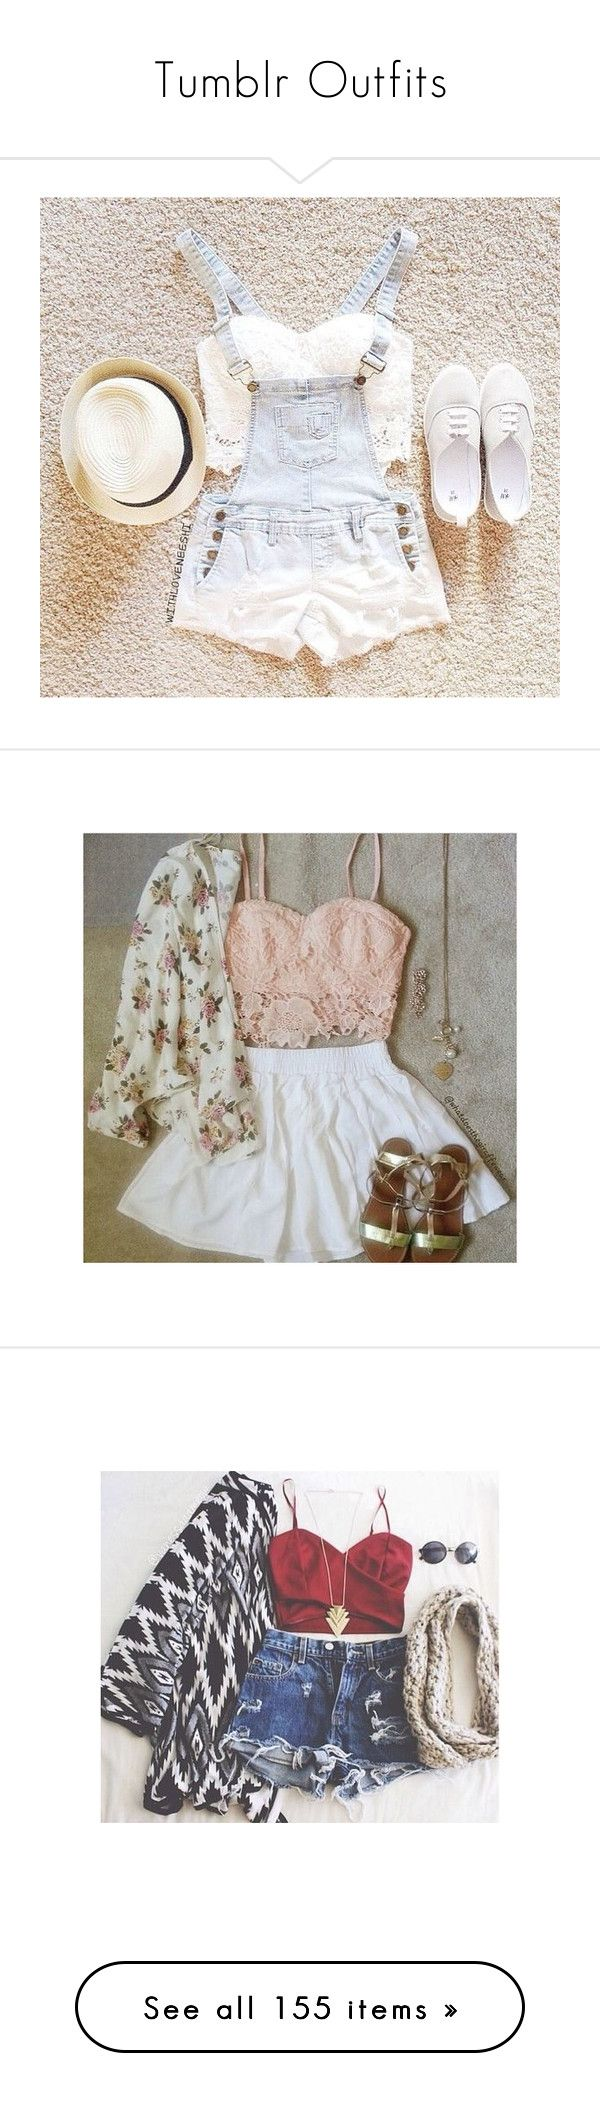 """Tumblr Outfits"" by fl0ridakilos ❤ liked on Polyvore featuring tops, white shirt, white crop tank, bustier crop top, denim shirt, bralette crop top, outfits, pictures, instagram and tumblr outfits"